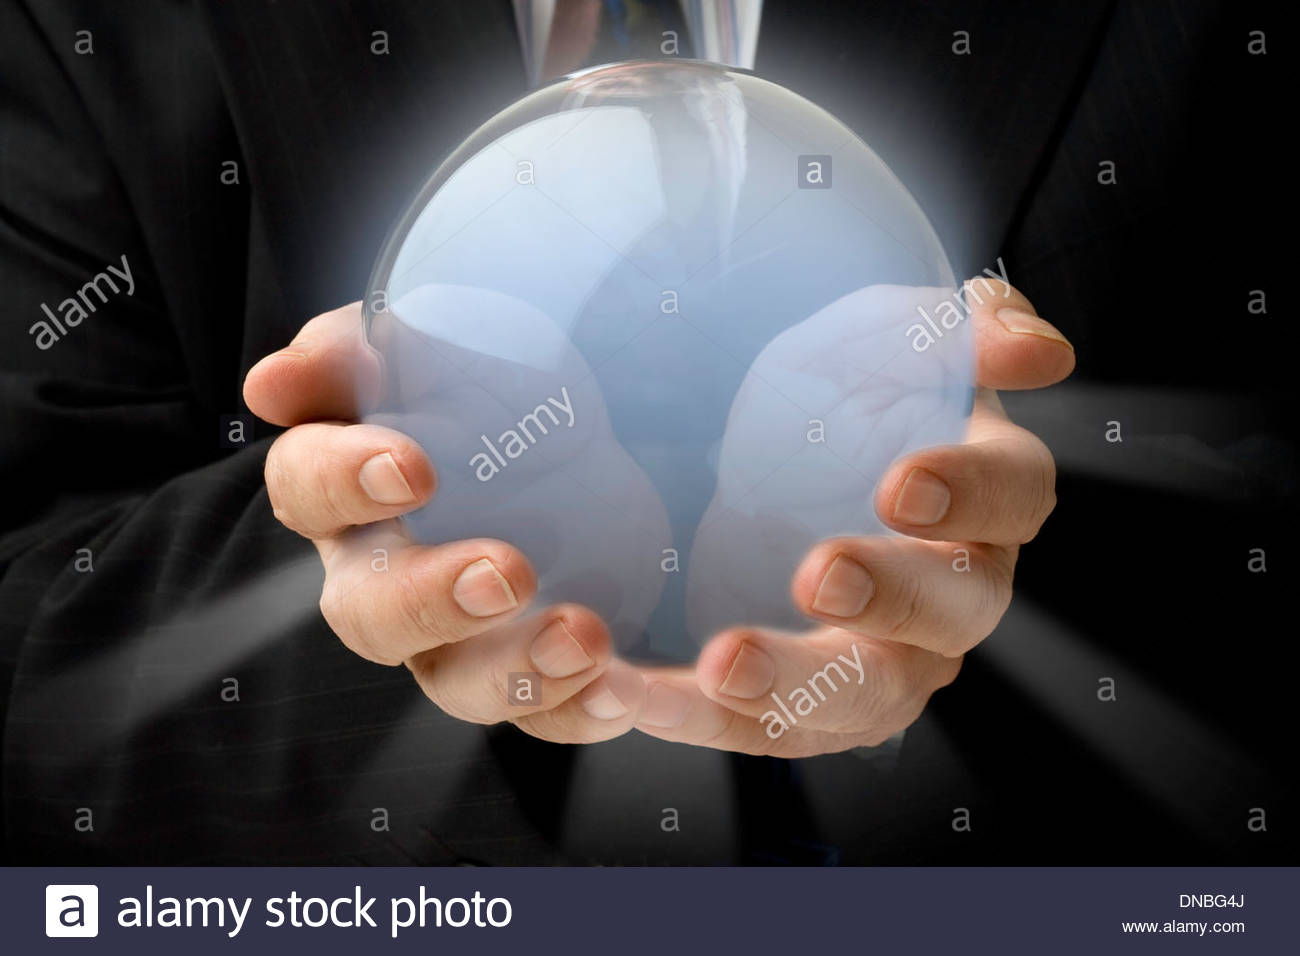 Technology Management Image: Businessman Holding A Glowing Crystal Ball In Both Hands